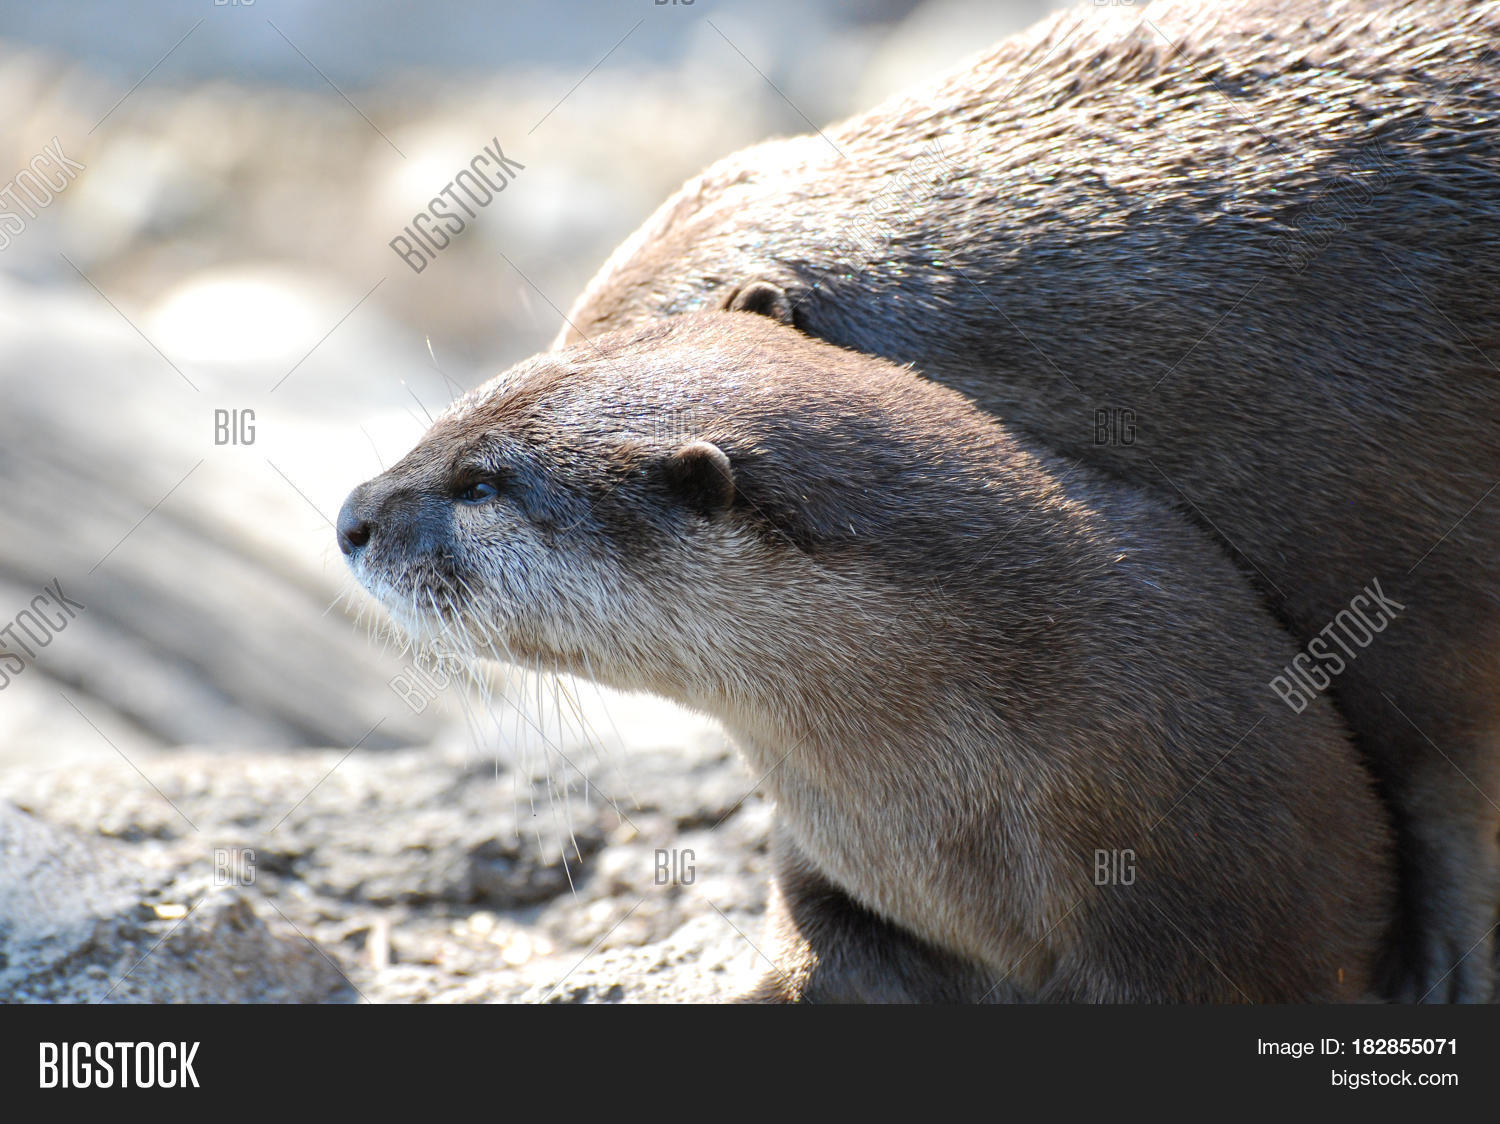 otter big and beautiful singles Gay men often use descriptive terms to identify and label other men within the wider gay community no doubt you've heard of some of these labels, like jock, otter, bear, cub, wolf, and so.